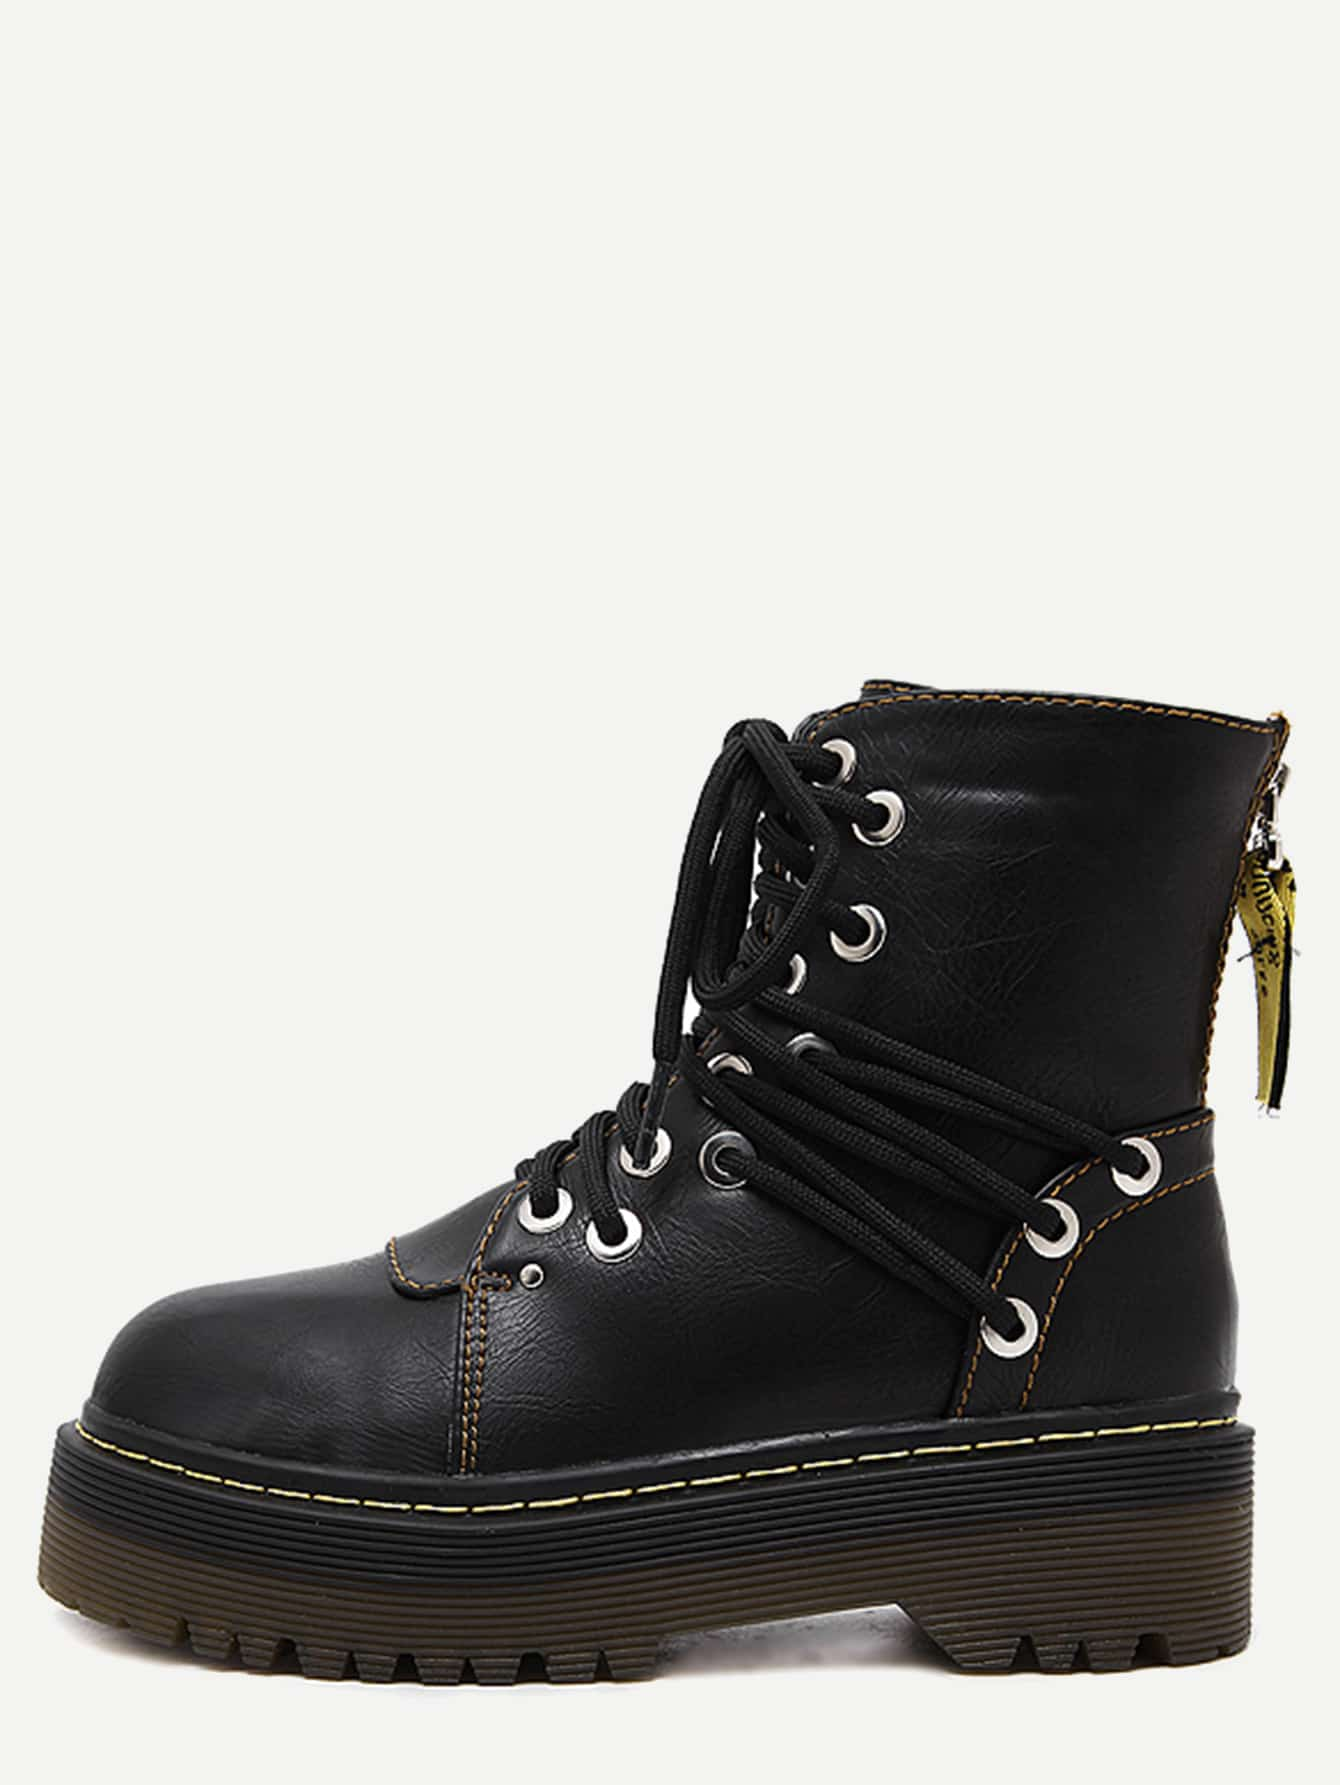 Black Round Toe PU Lace Up Martin Boots shoes161108813